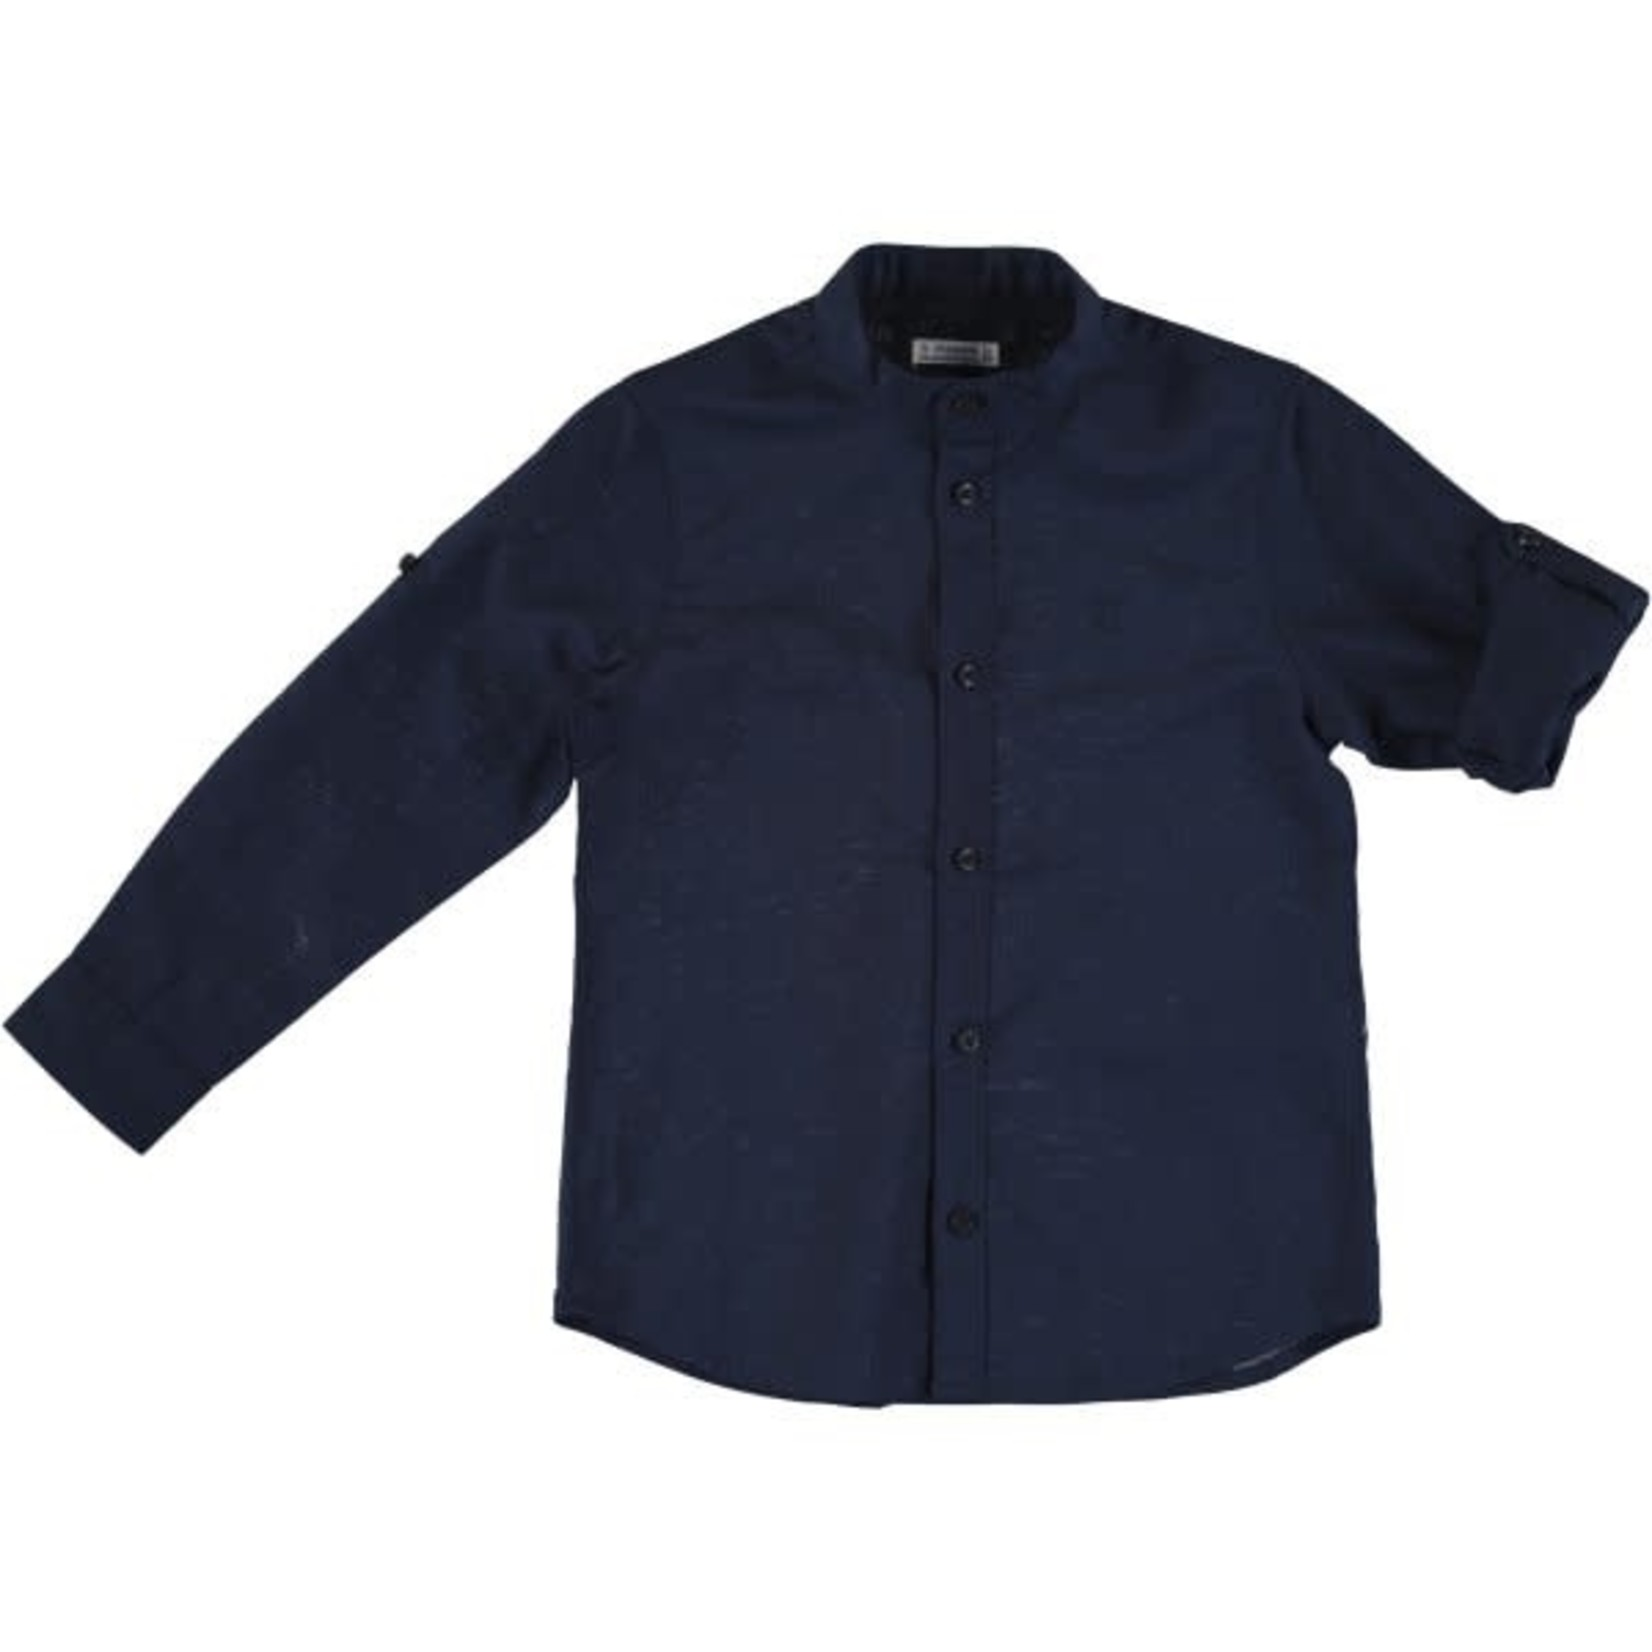 Mayoral linen l/s shirt   Navy